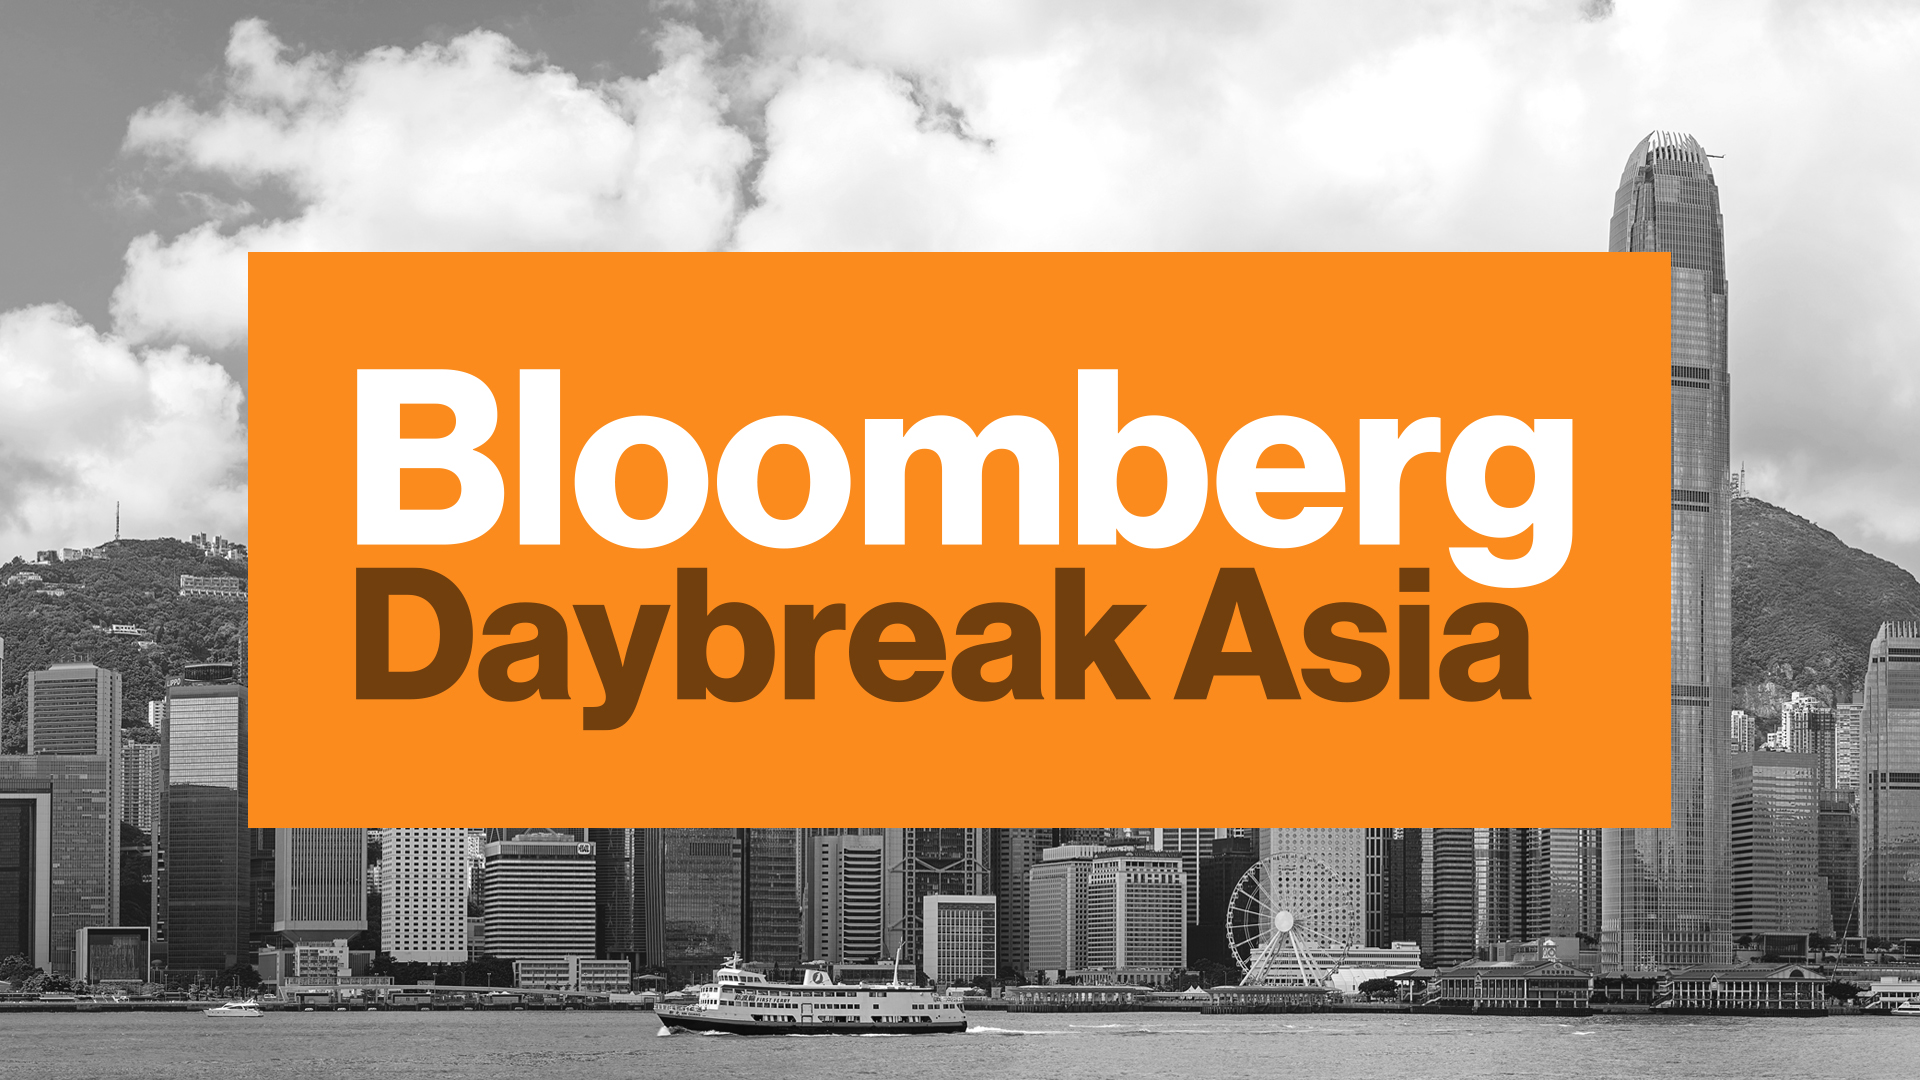 bloomberg television debuts new morning show daybreak asia featuring global co hosts. Black Bedroom Furniture Sets. Home Design Ideas